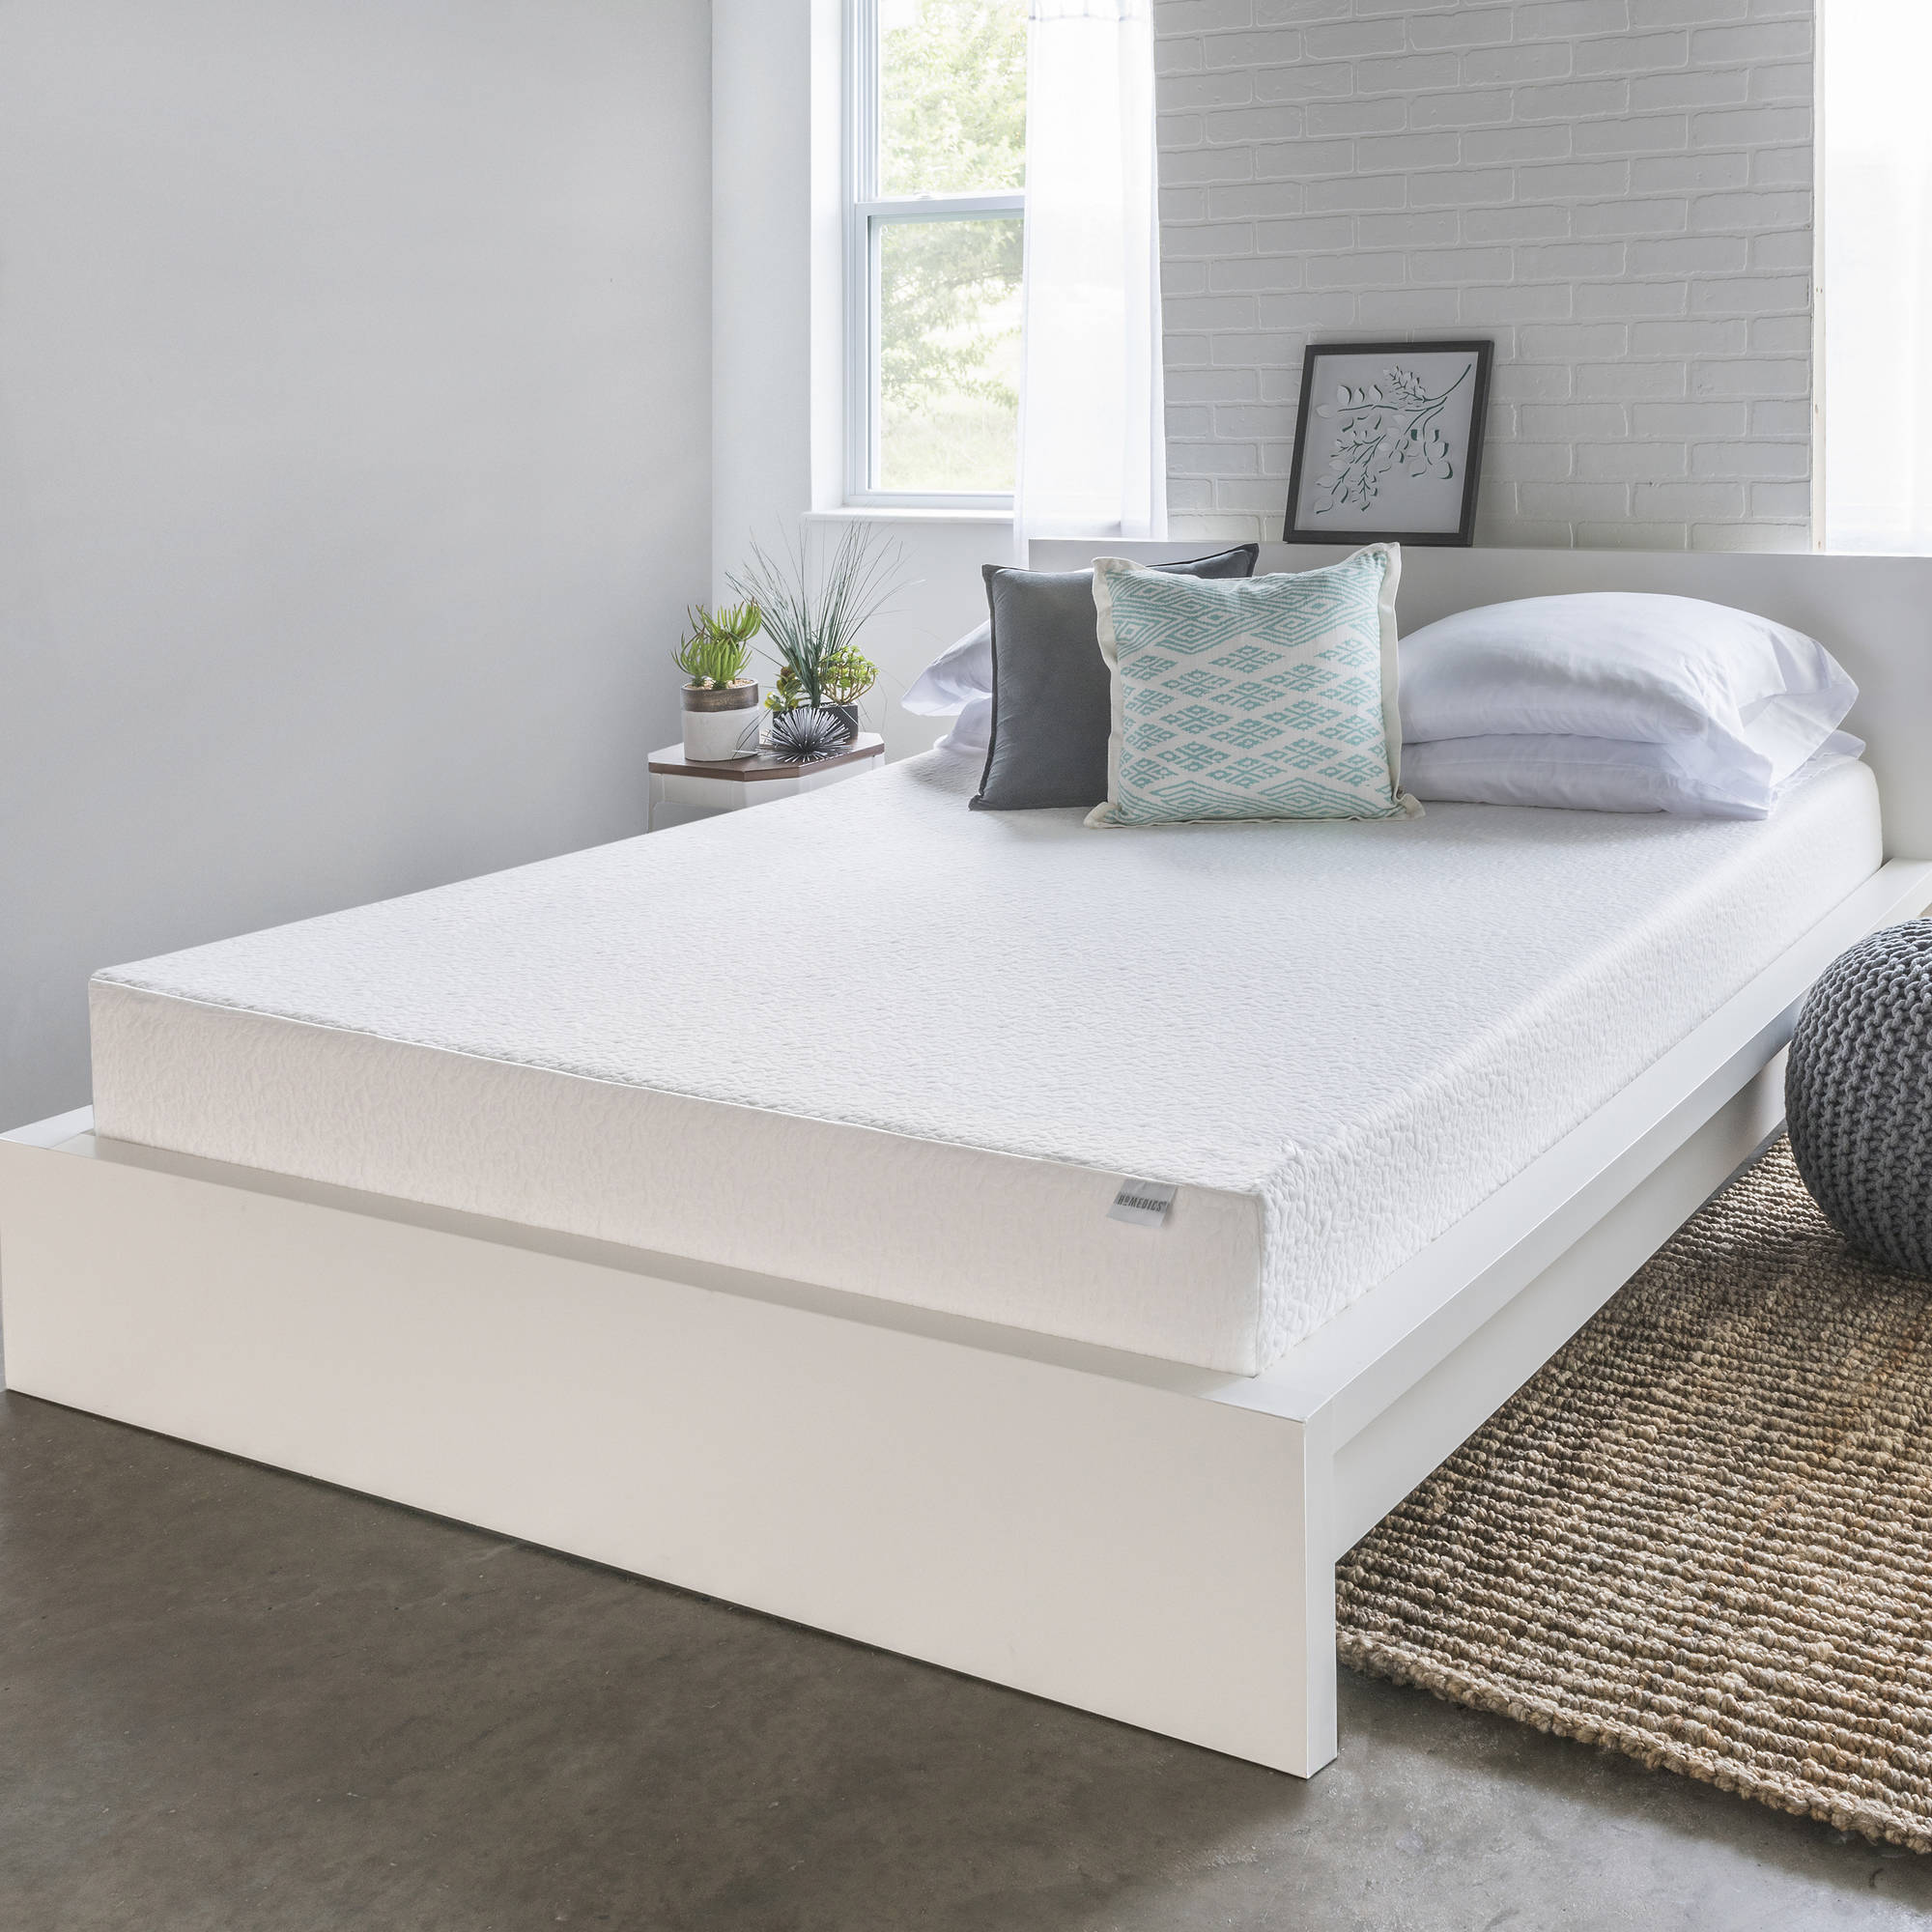 "HoMedics 8"" Memory Foam Mattress, Multiple Sizes"